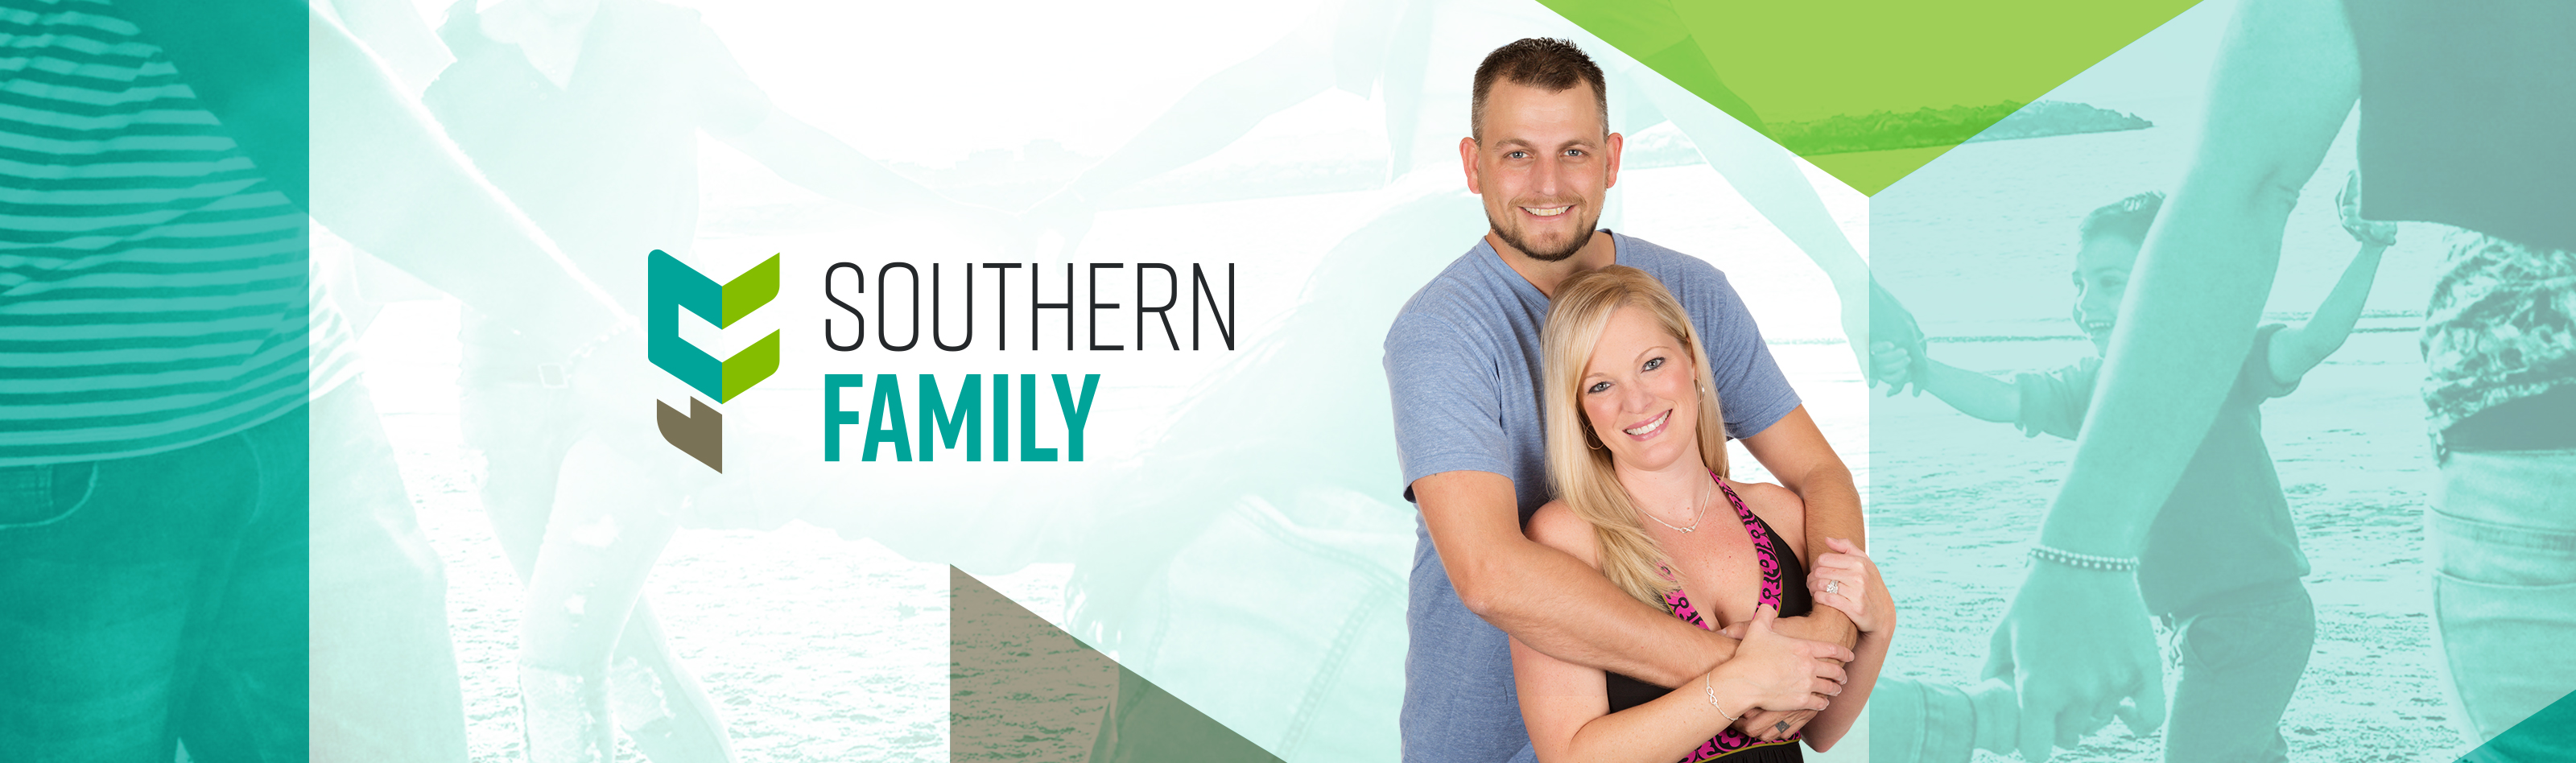 Southern Family Banner